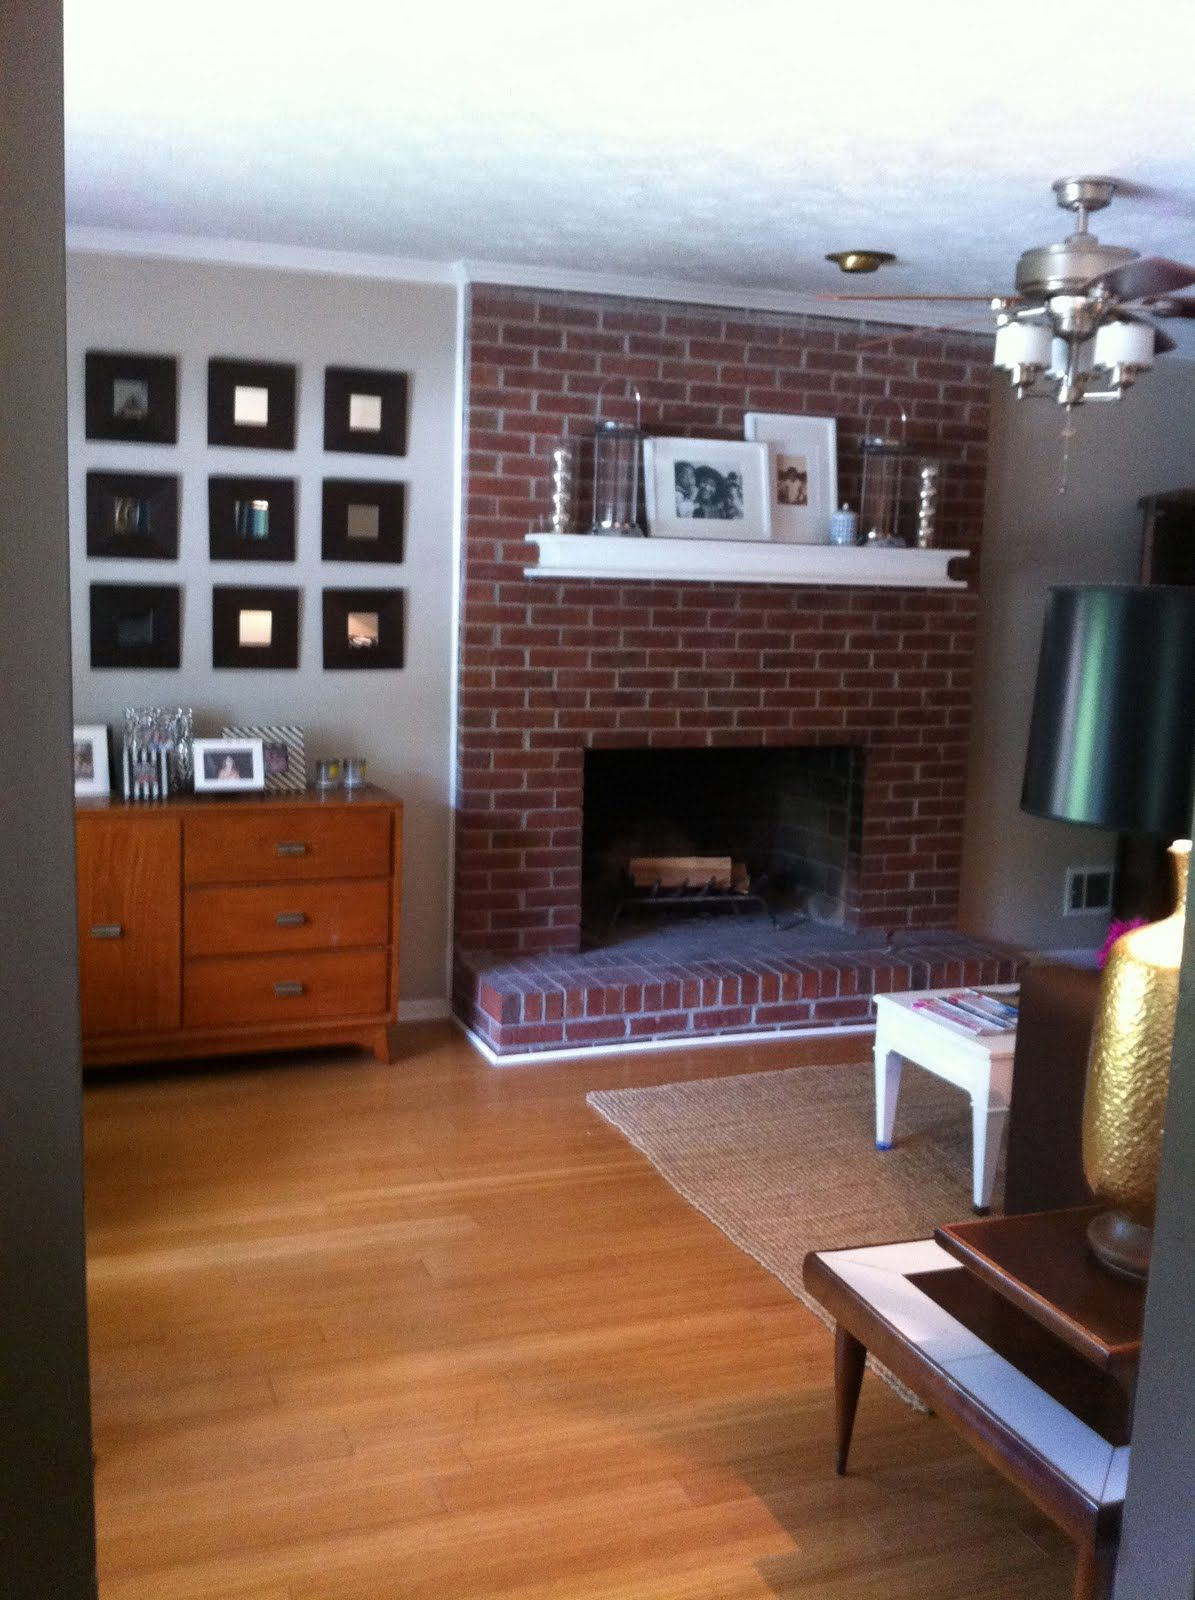 Drd Dayka Robinson Designs Painting A Brick Fireplace Living Room With Fireplace Red Brick Fireplaces Brick Fireplace